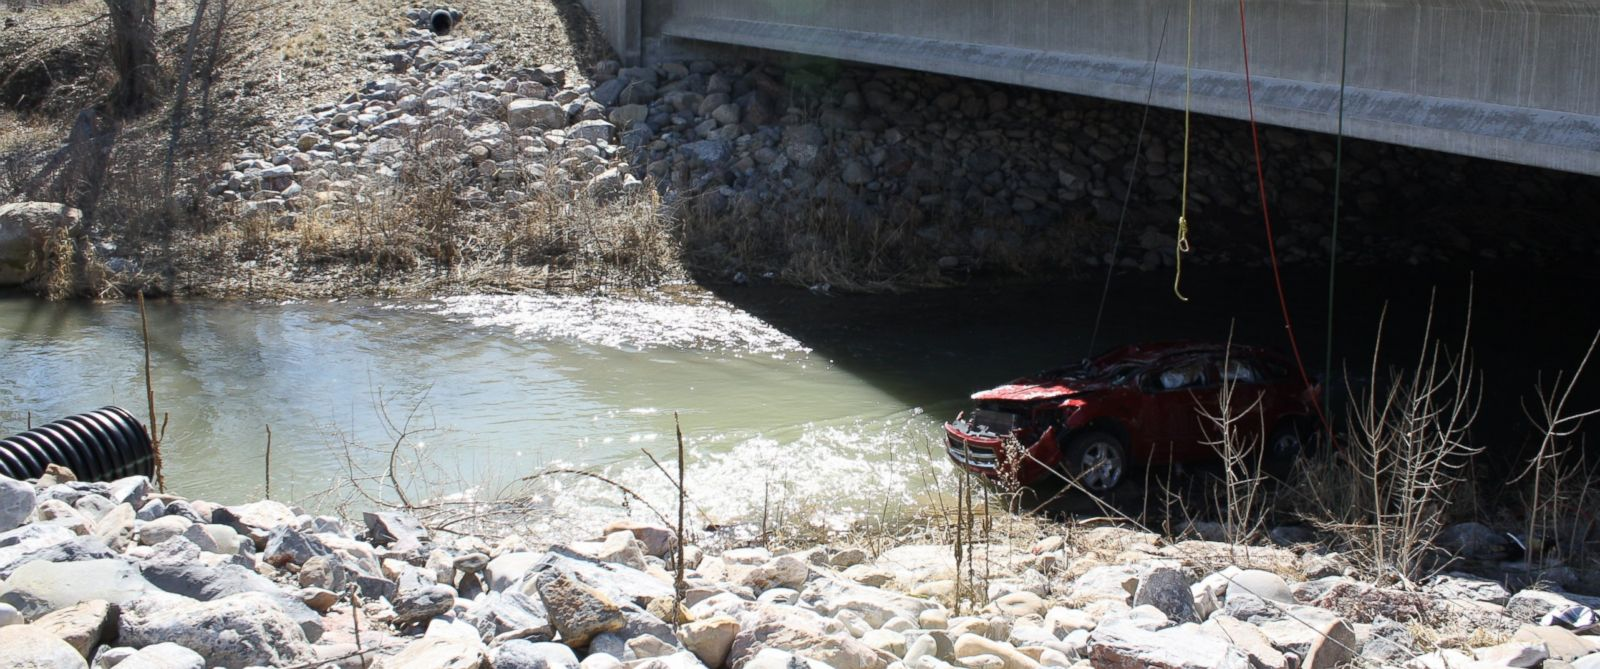 A baby was rescued alive from a car overturned in a Utah river on Saturday, March 7, 2015.